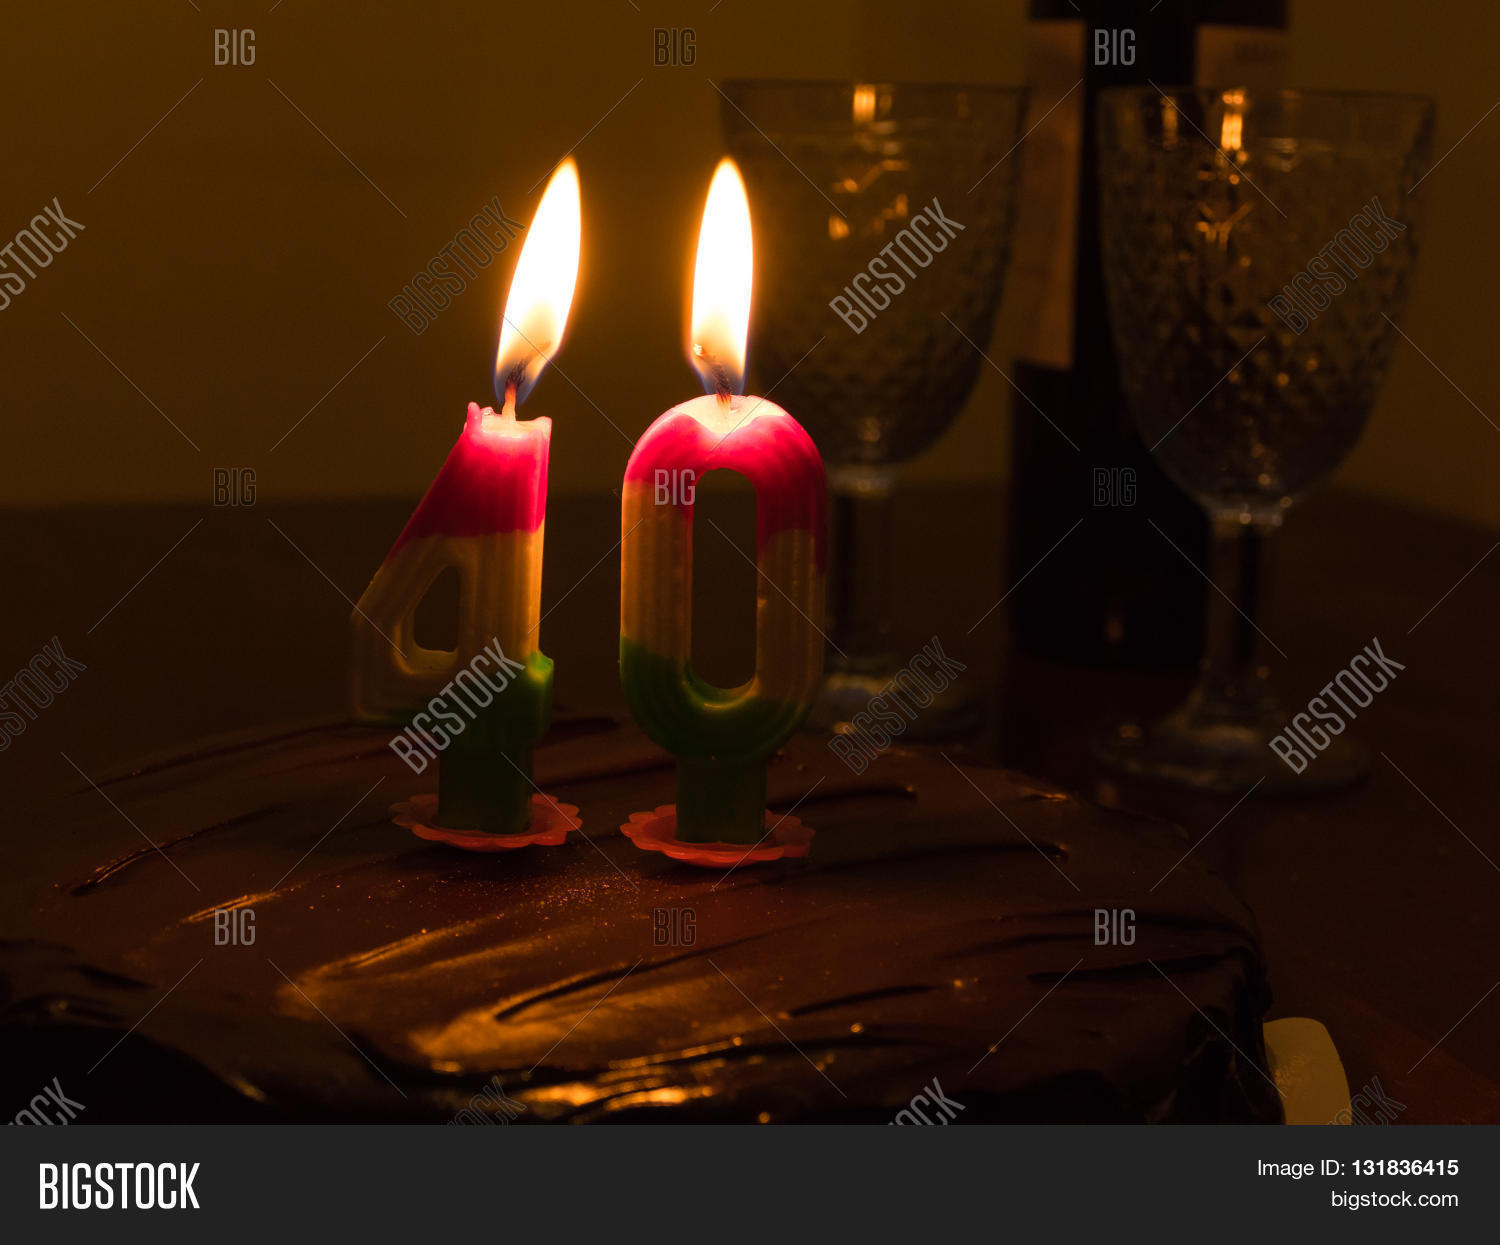 40 Candle On Chocloate Image Photo Free Trial Bigstock